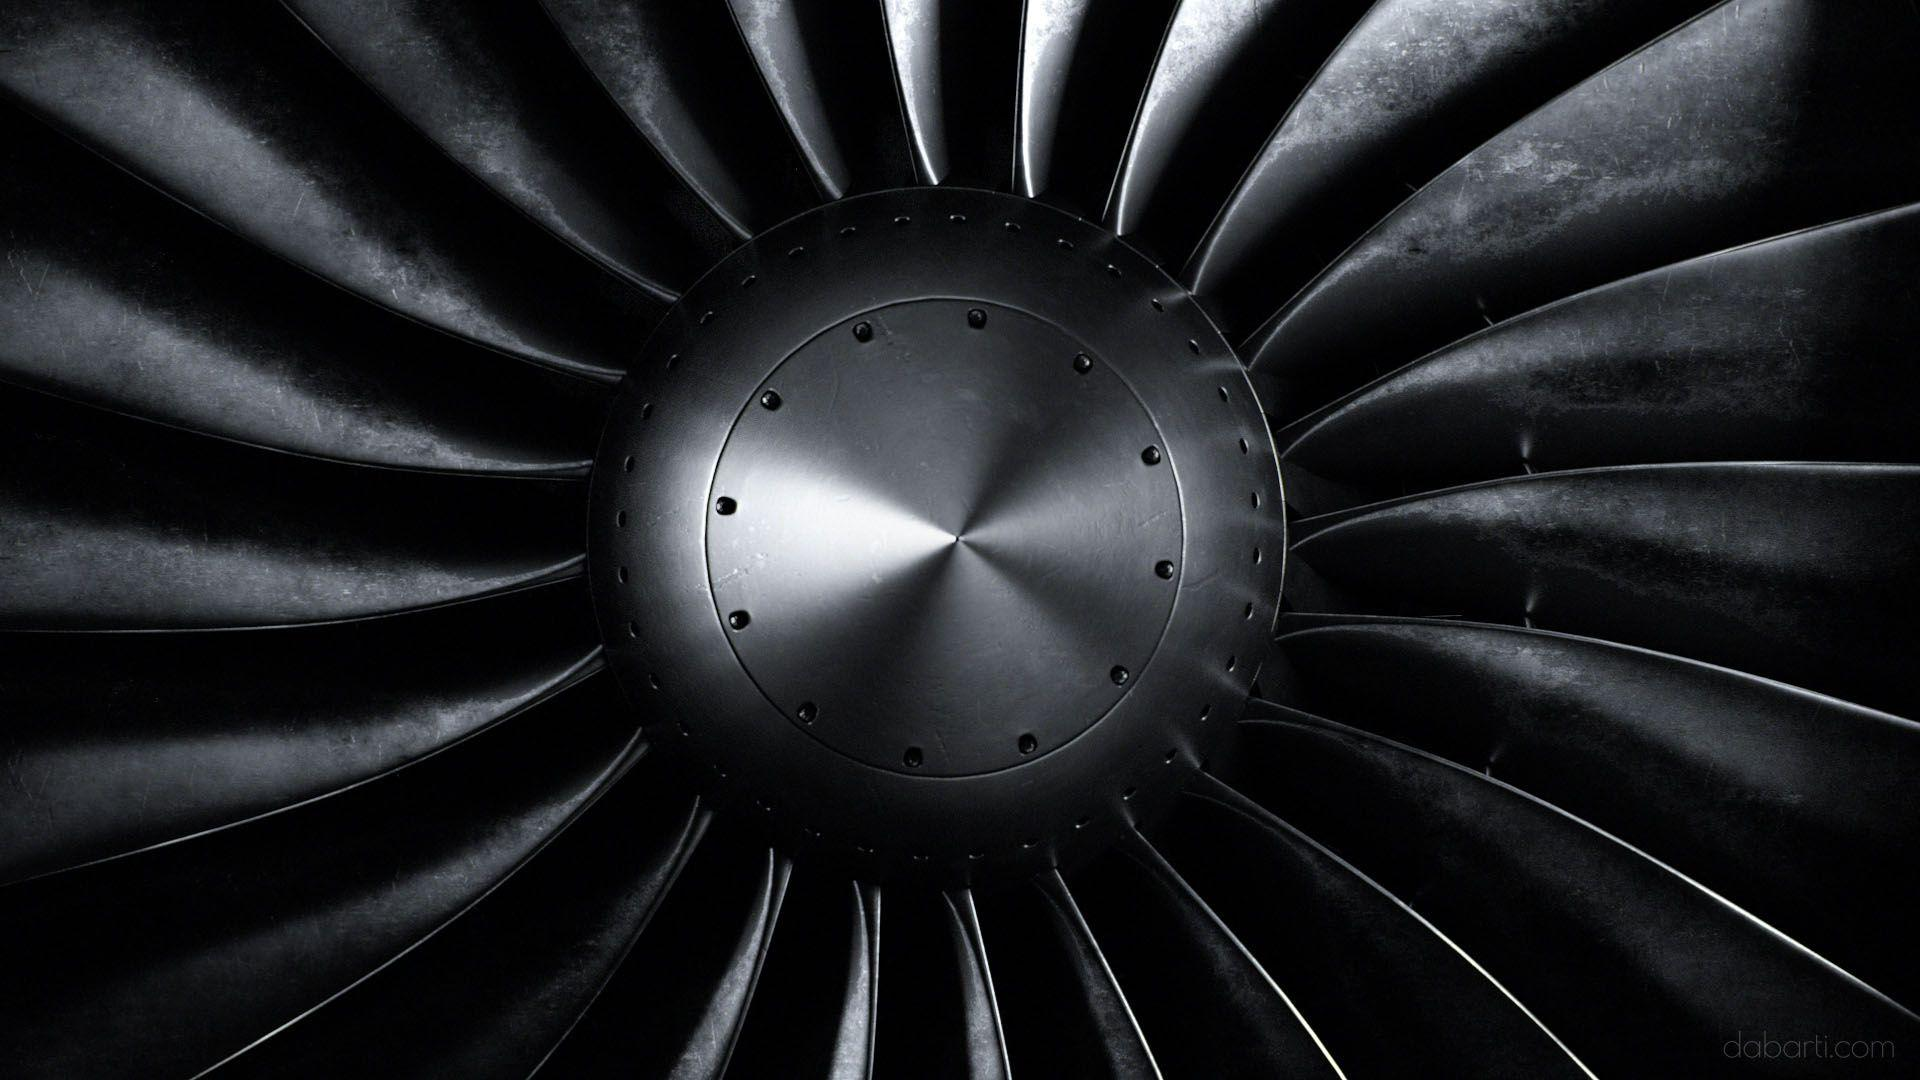 Jet engine wallpapers wallpaper cave - Jet engine wallpaper ...